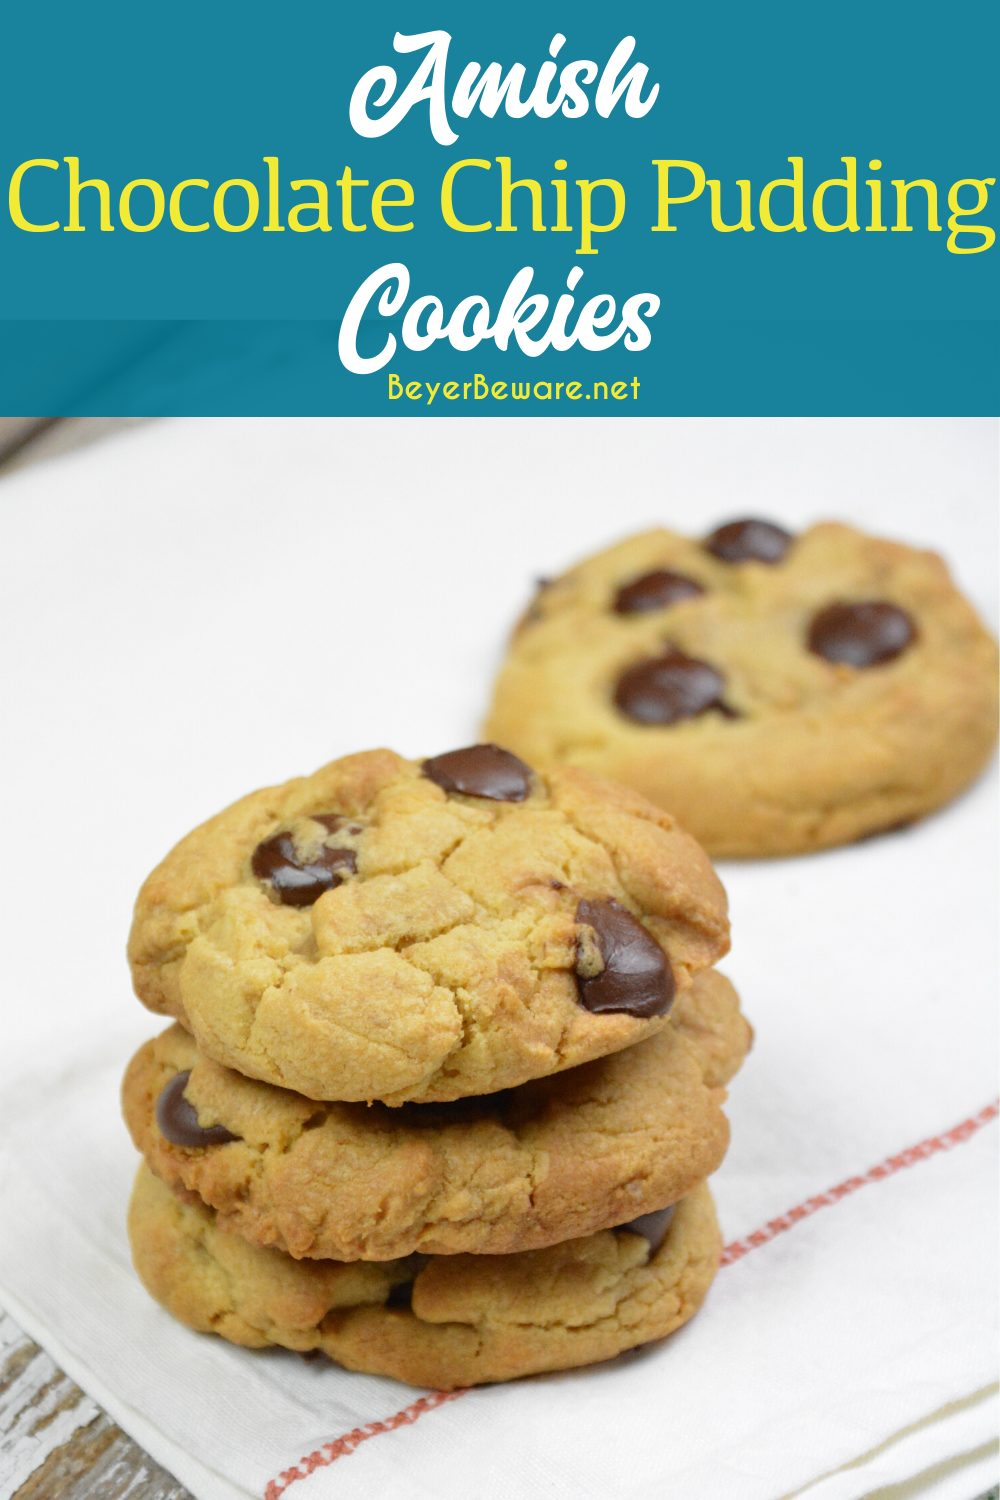 Amish chocolate chip pudding cookies combine traditional cookie ingredients with a unique combination of shortening, butter, and pudding to make these moist pudding cookies irresistible.